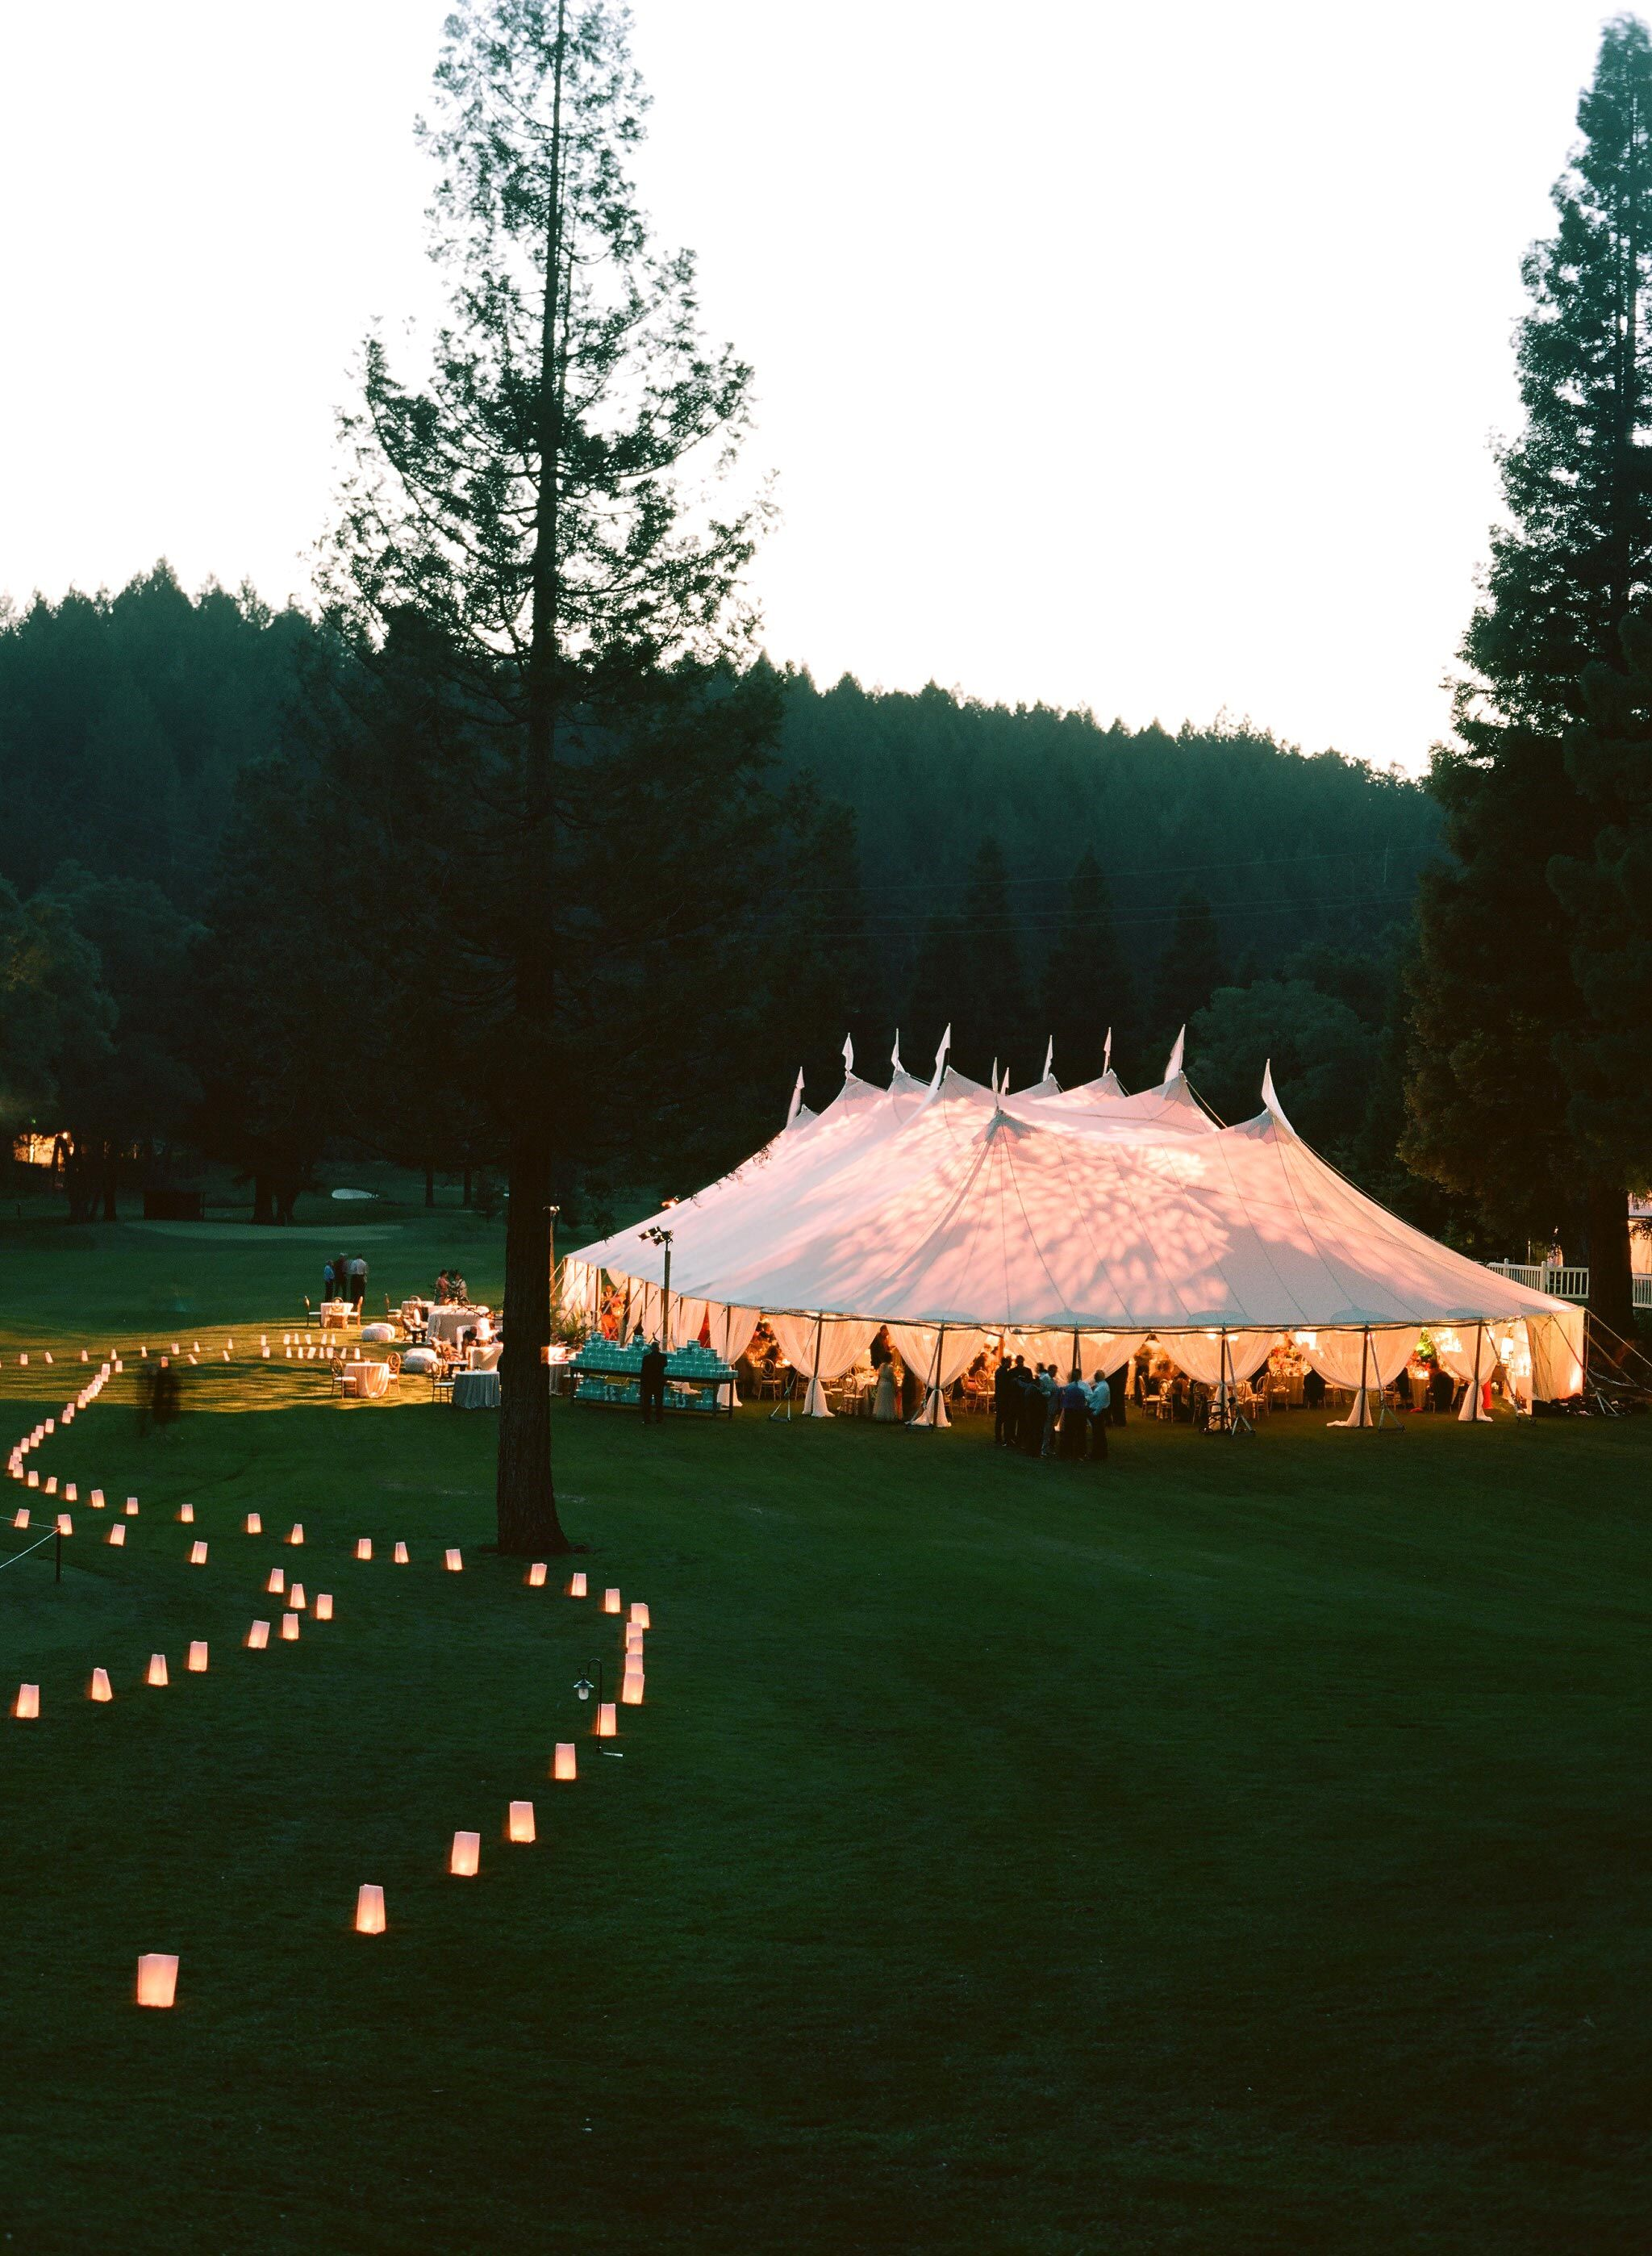 50 Tips for Planning Your Wedding Reception